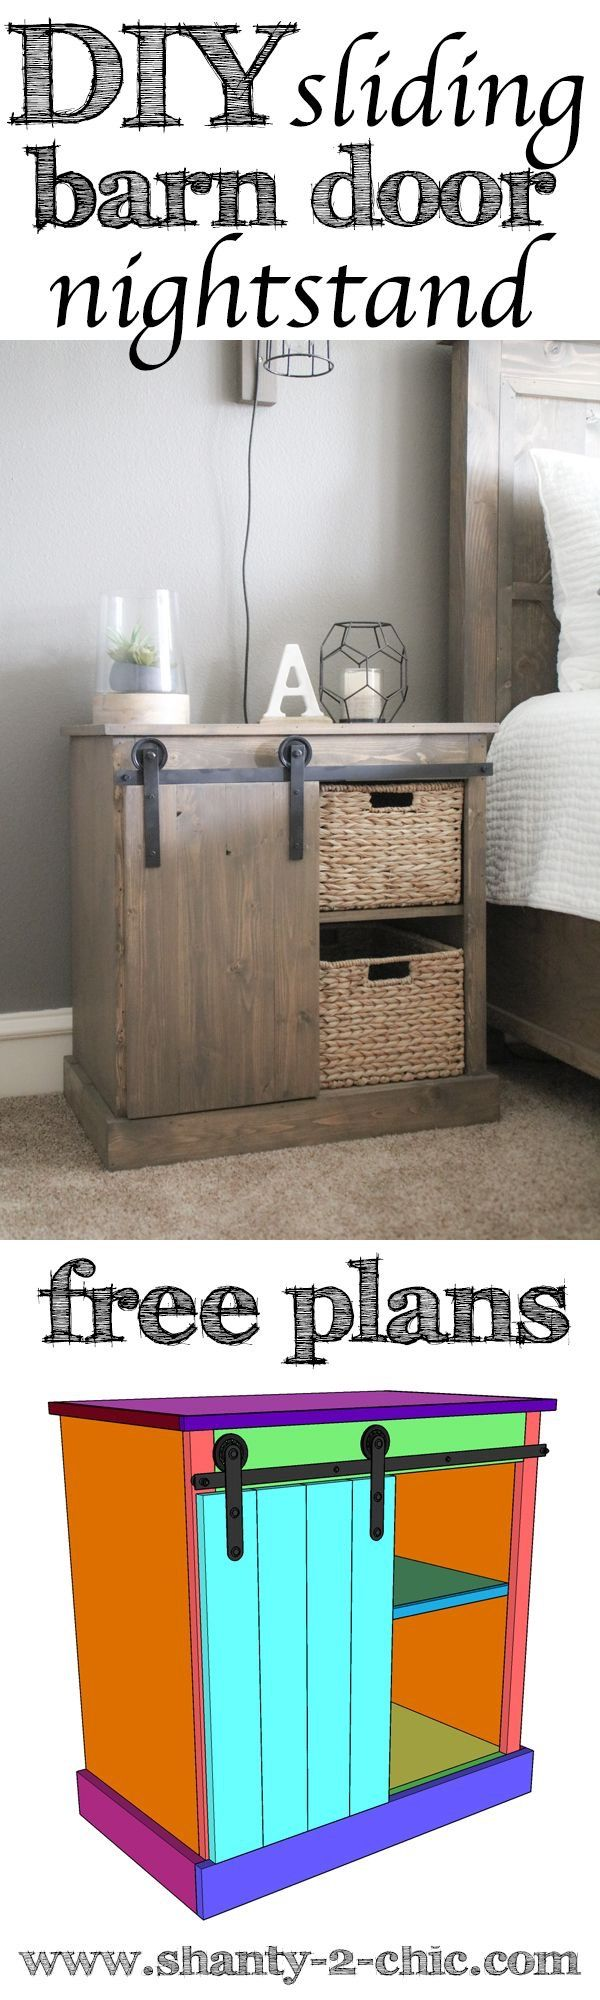 Pin by rylee bledsoe on home wish list in pinterest home